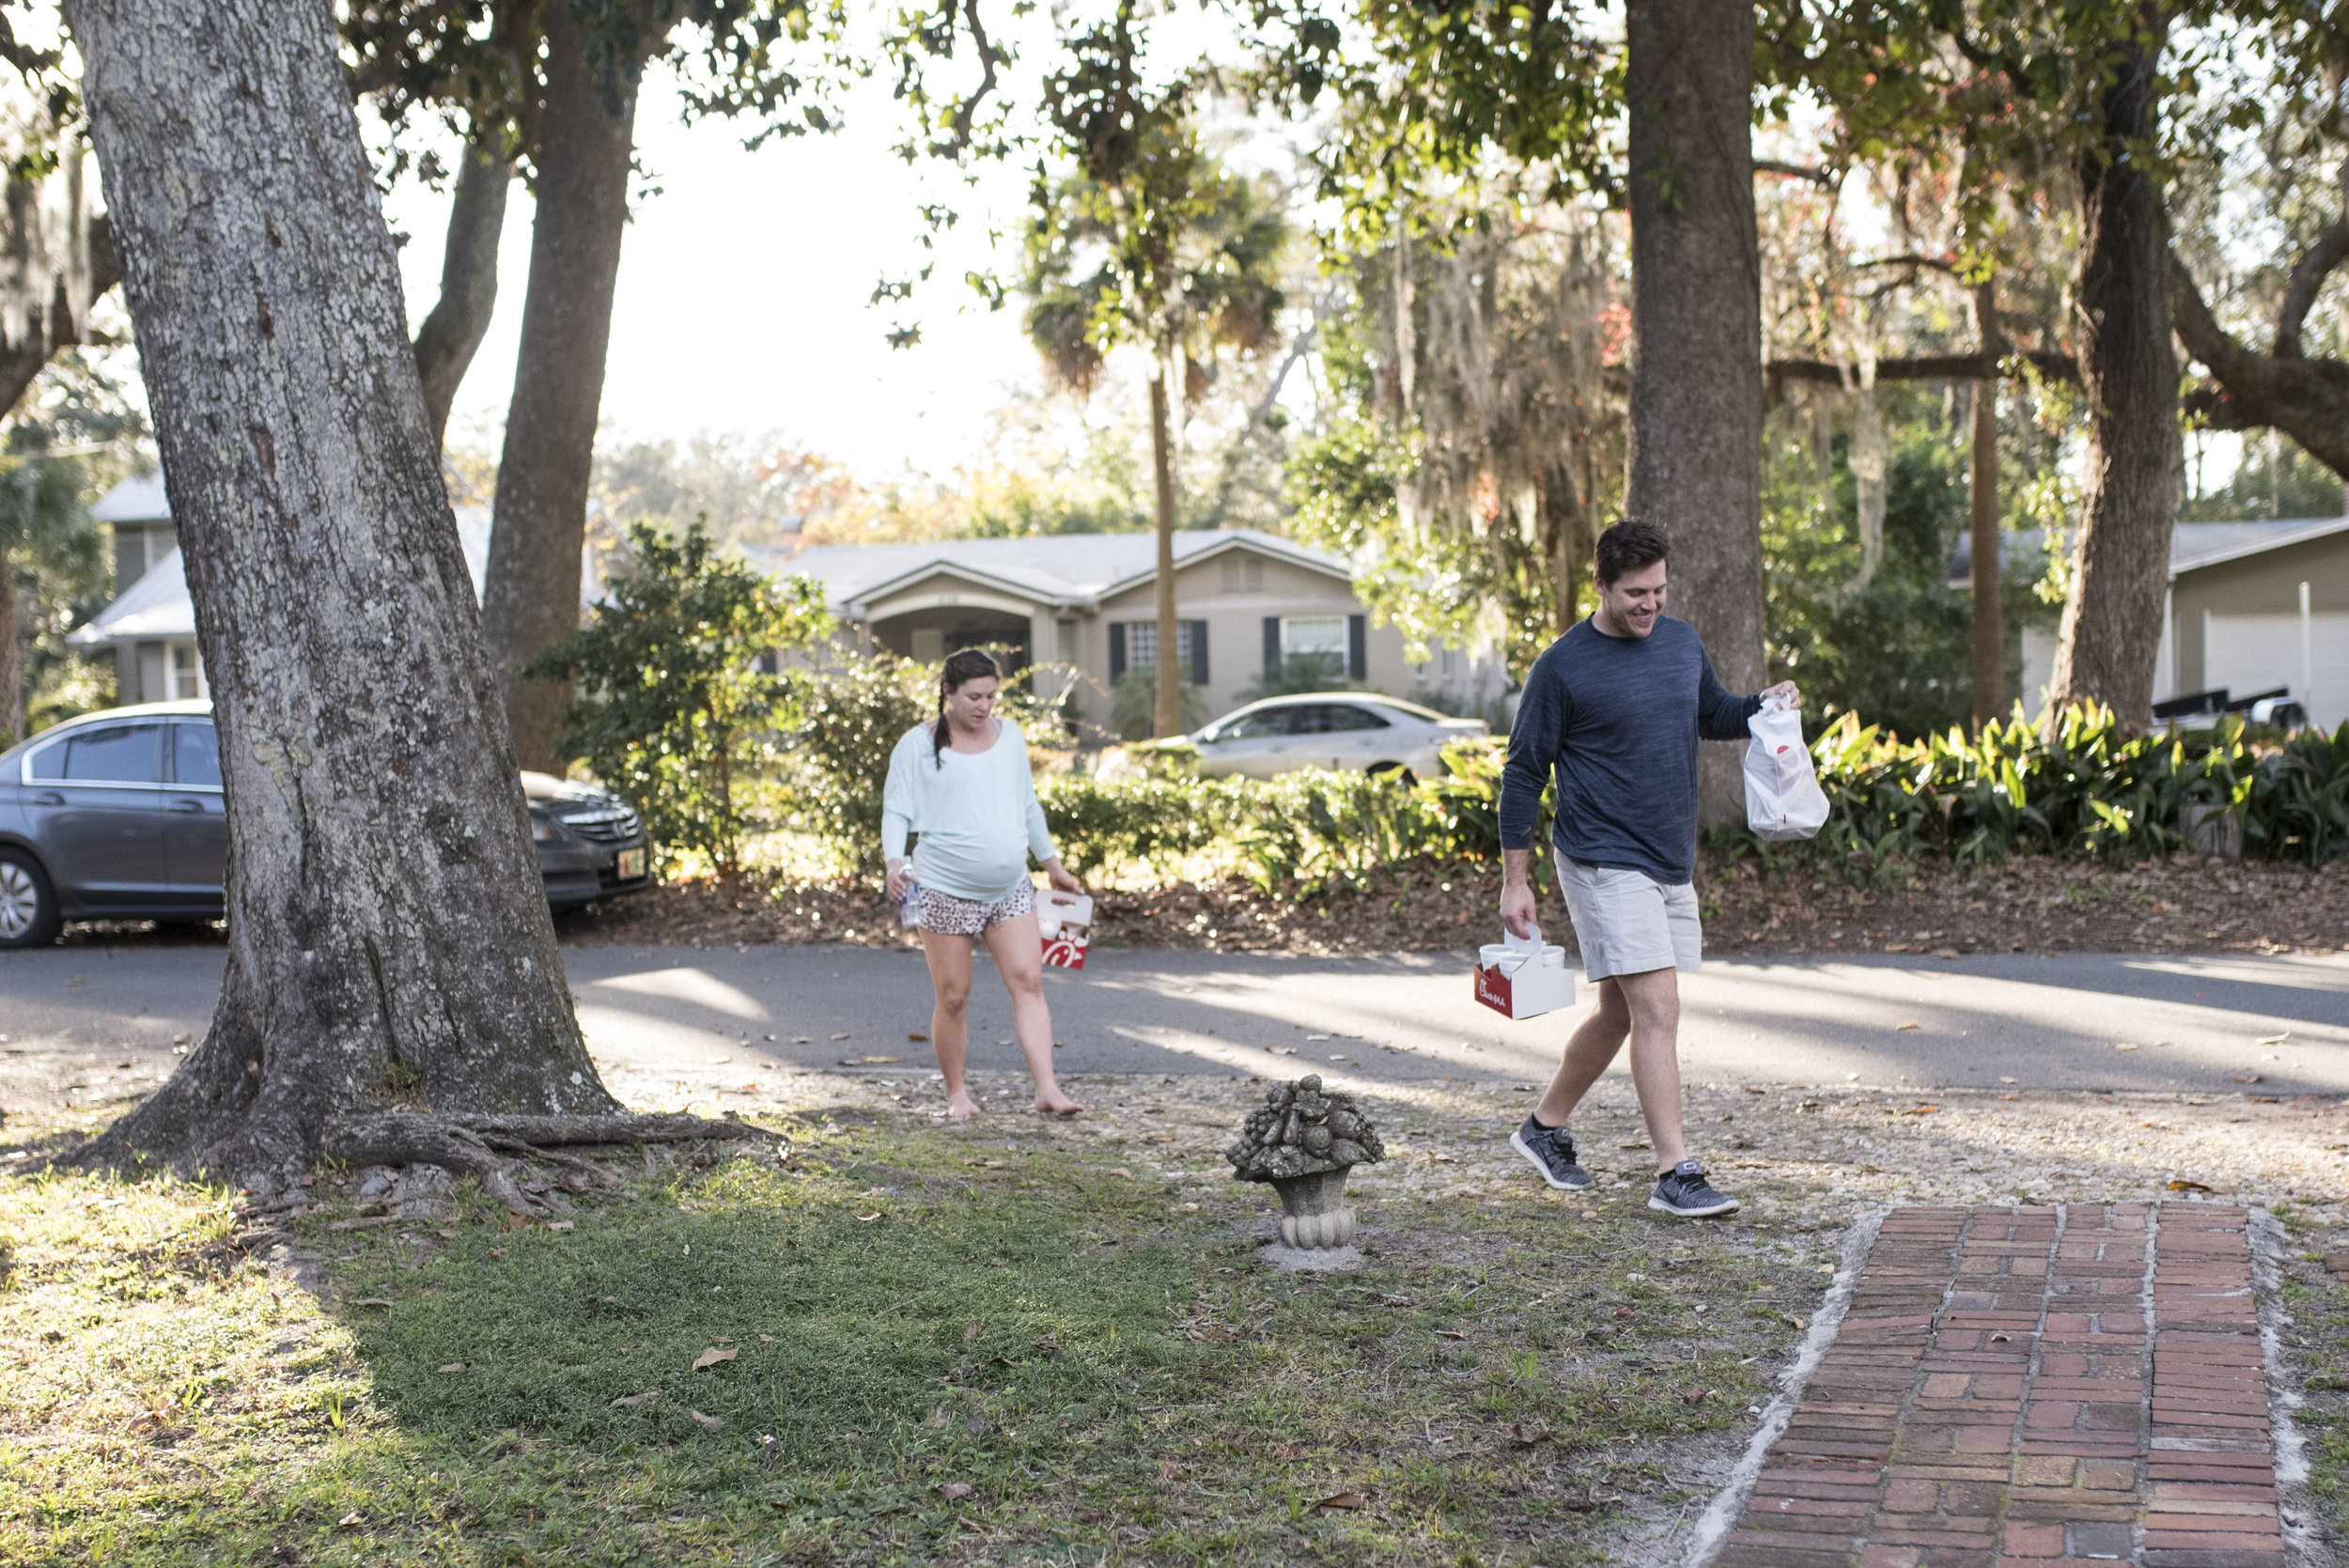 Couple walks in from the front yard with Chick-fil-a for the birth team.